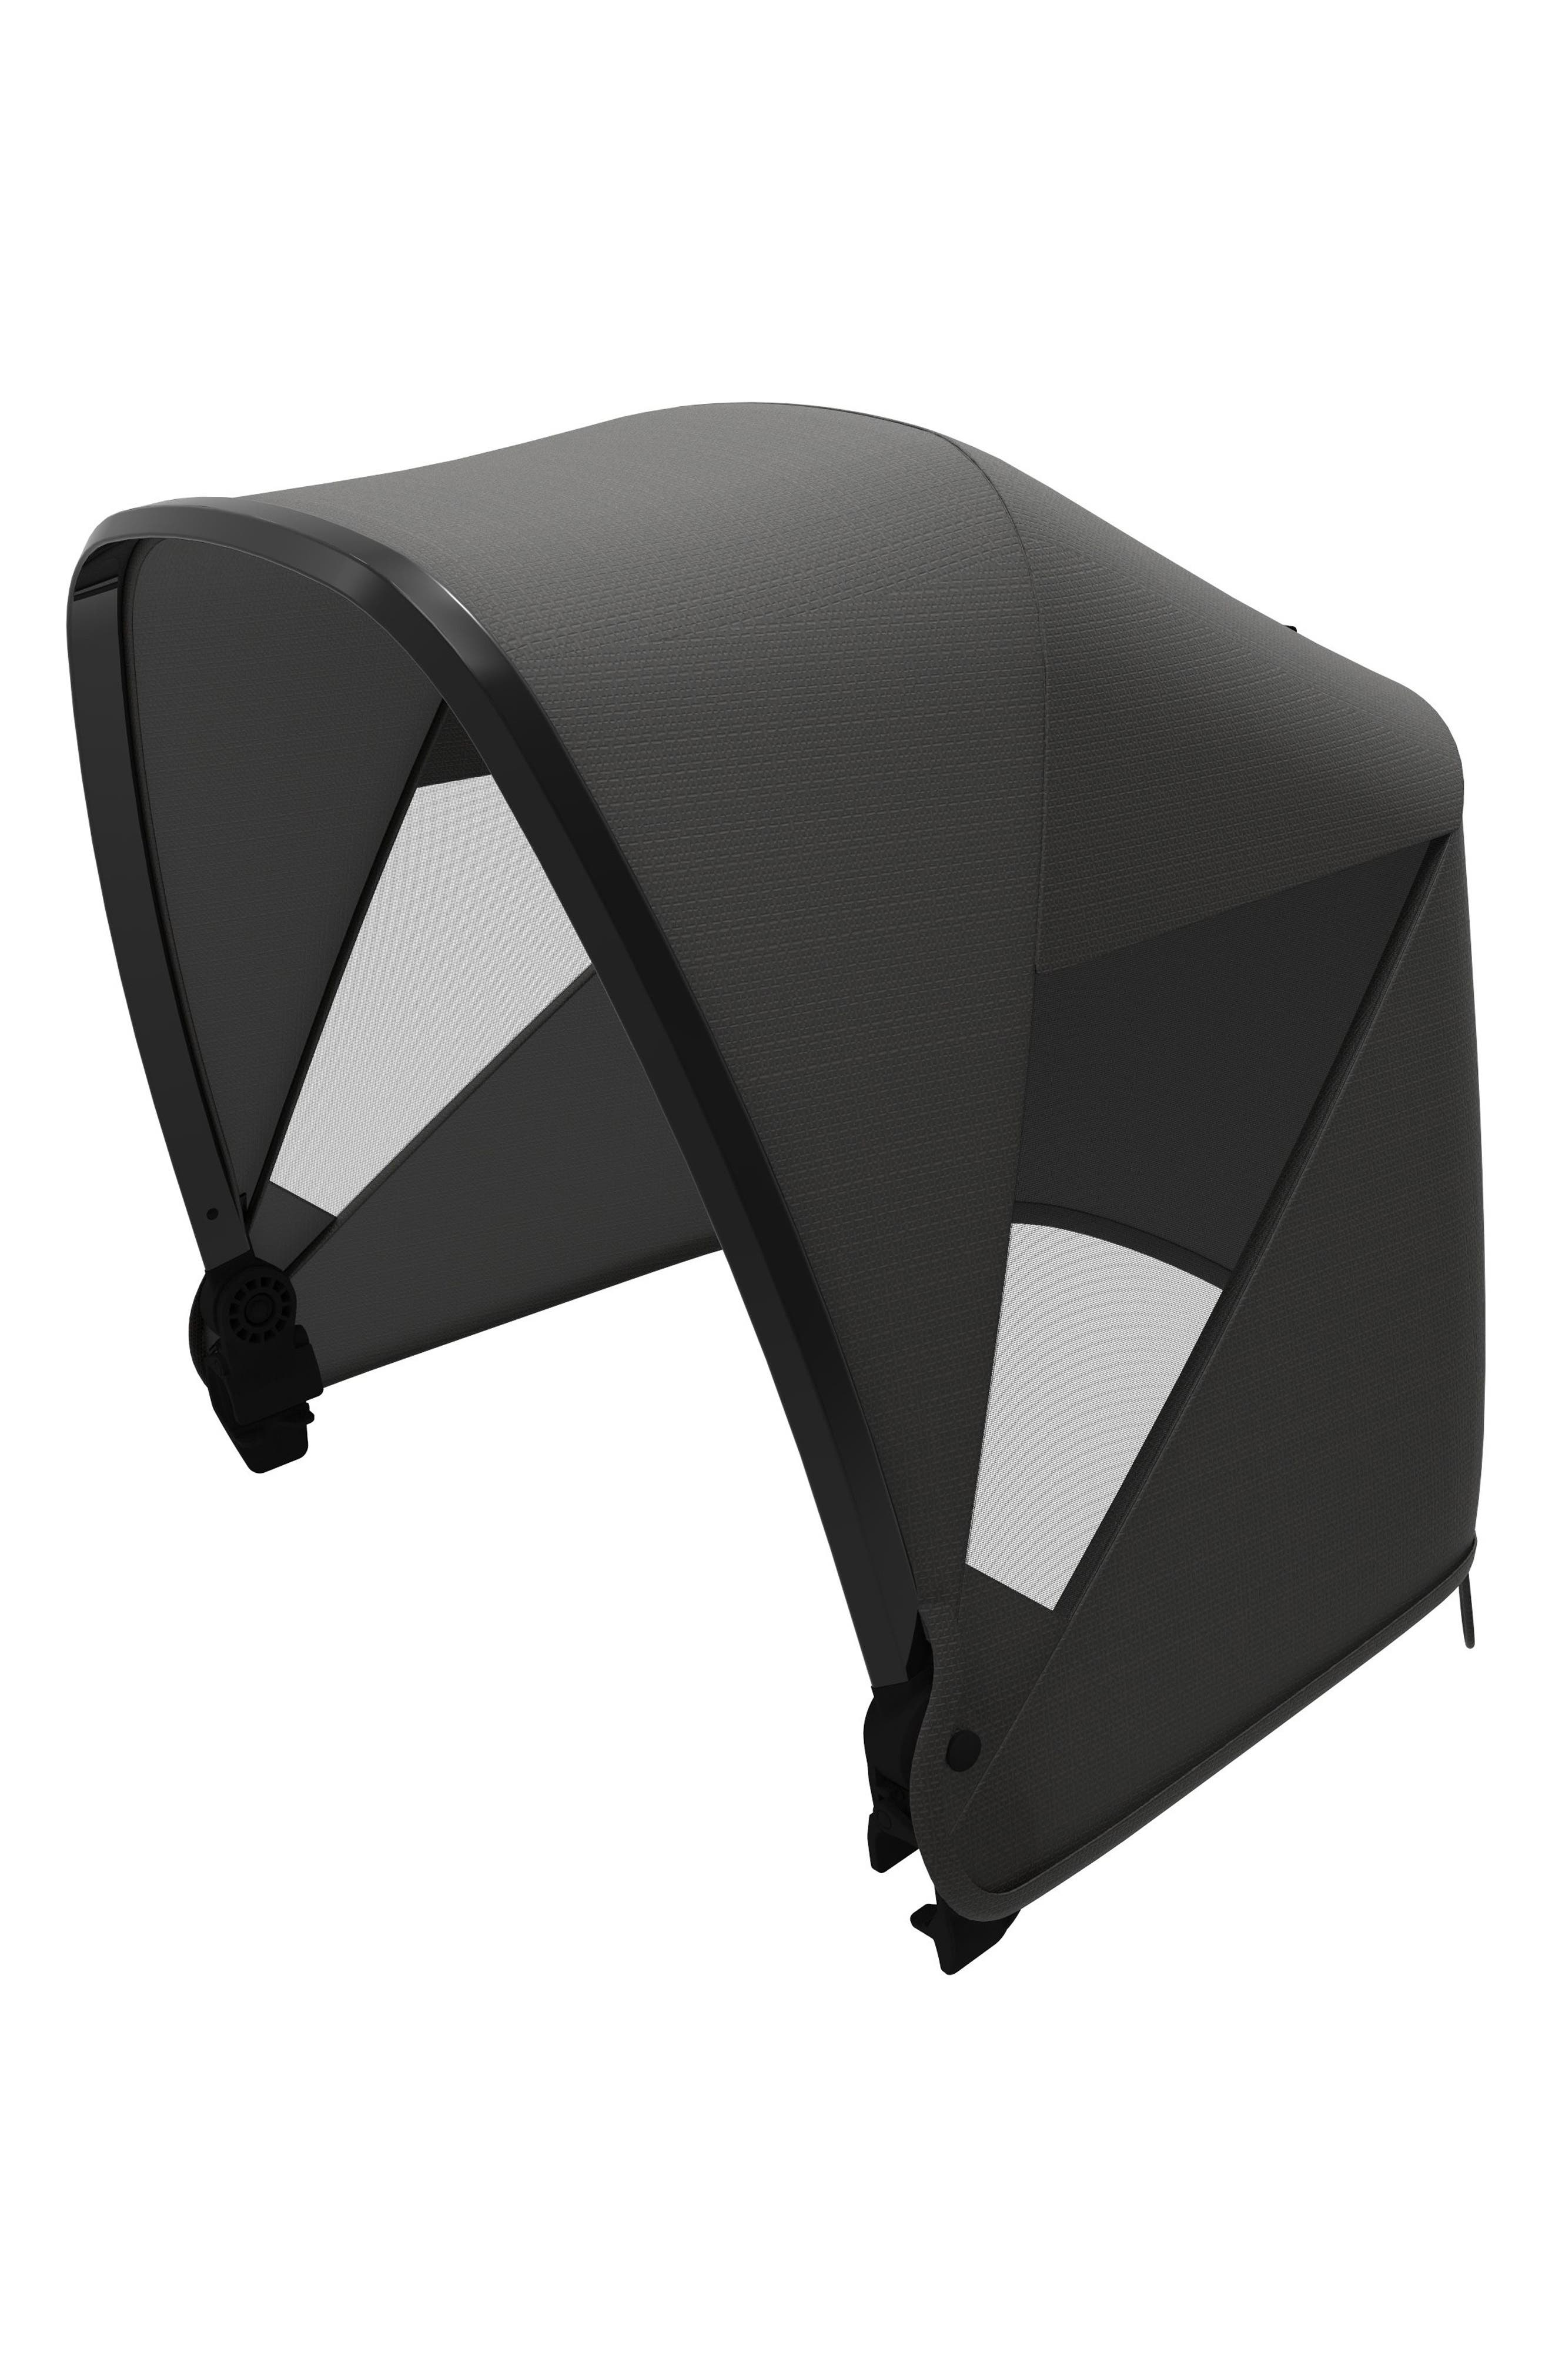 Alternate Image 3  - Veer Retractable Canopy